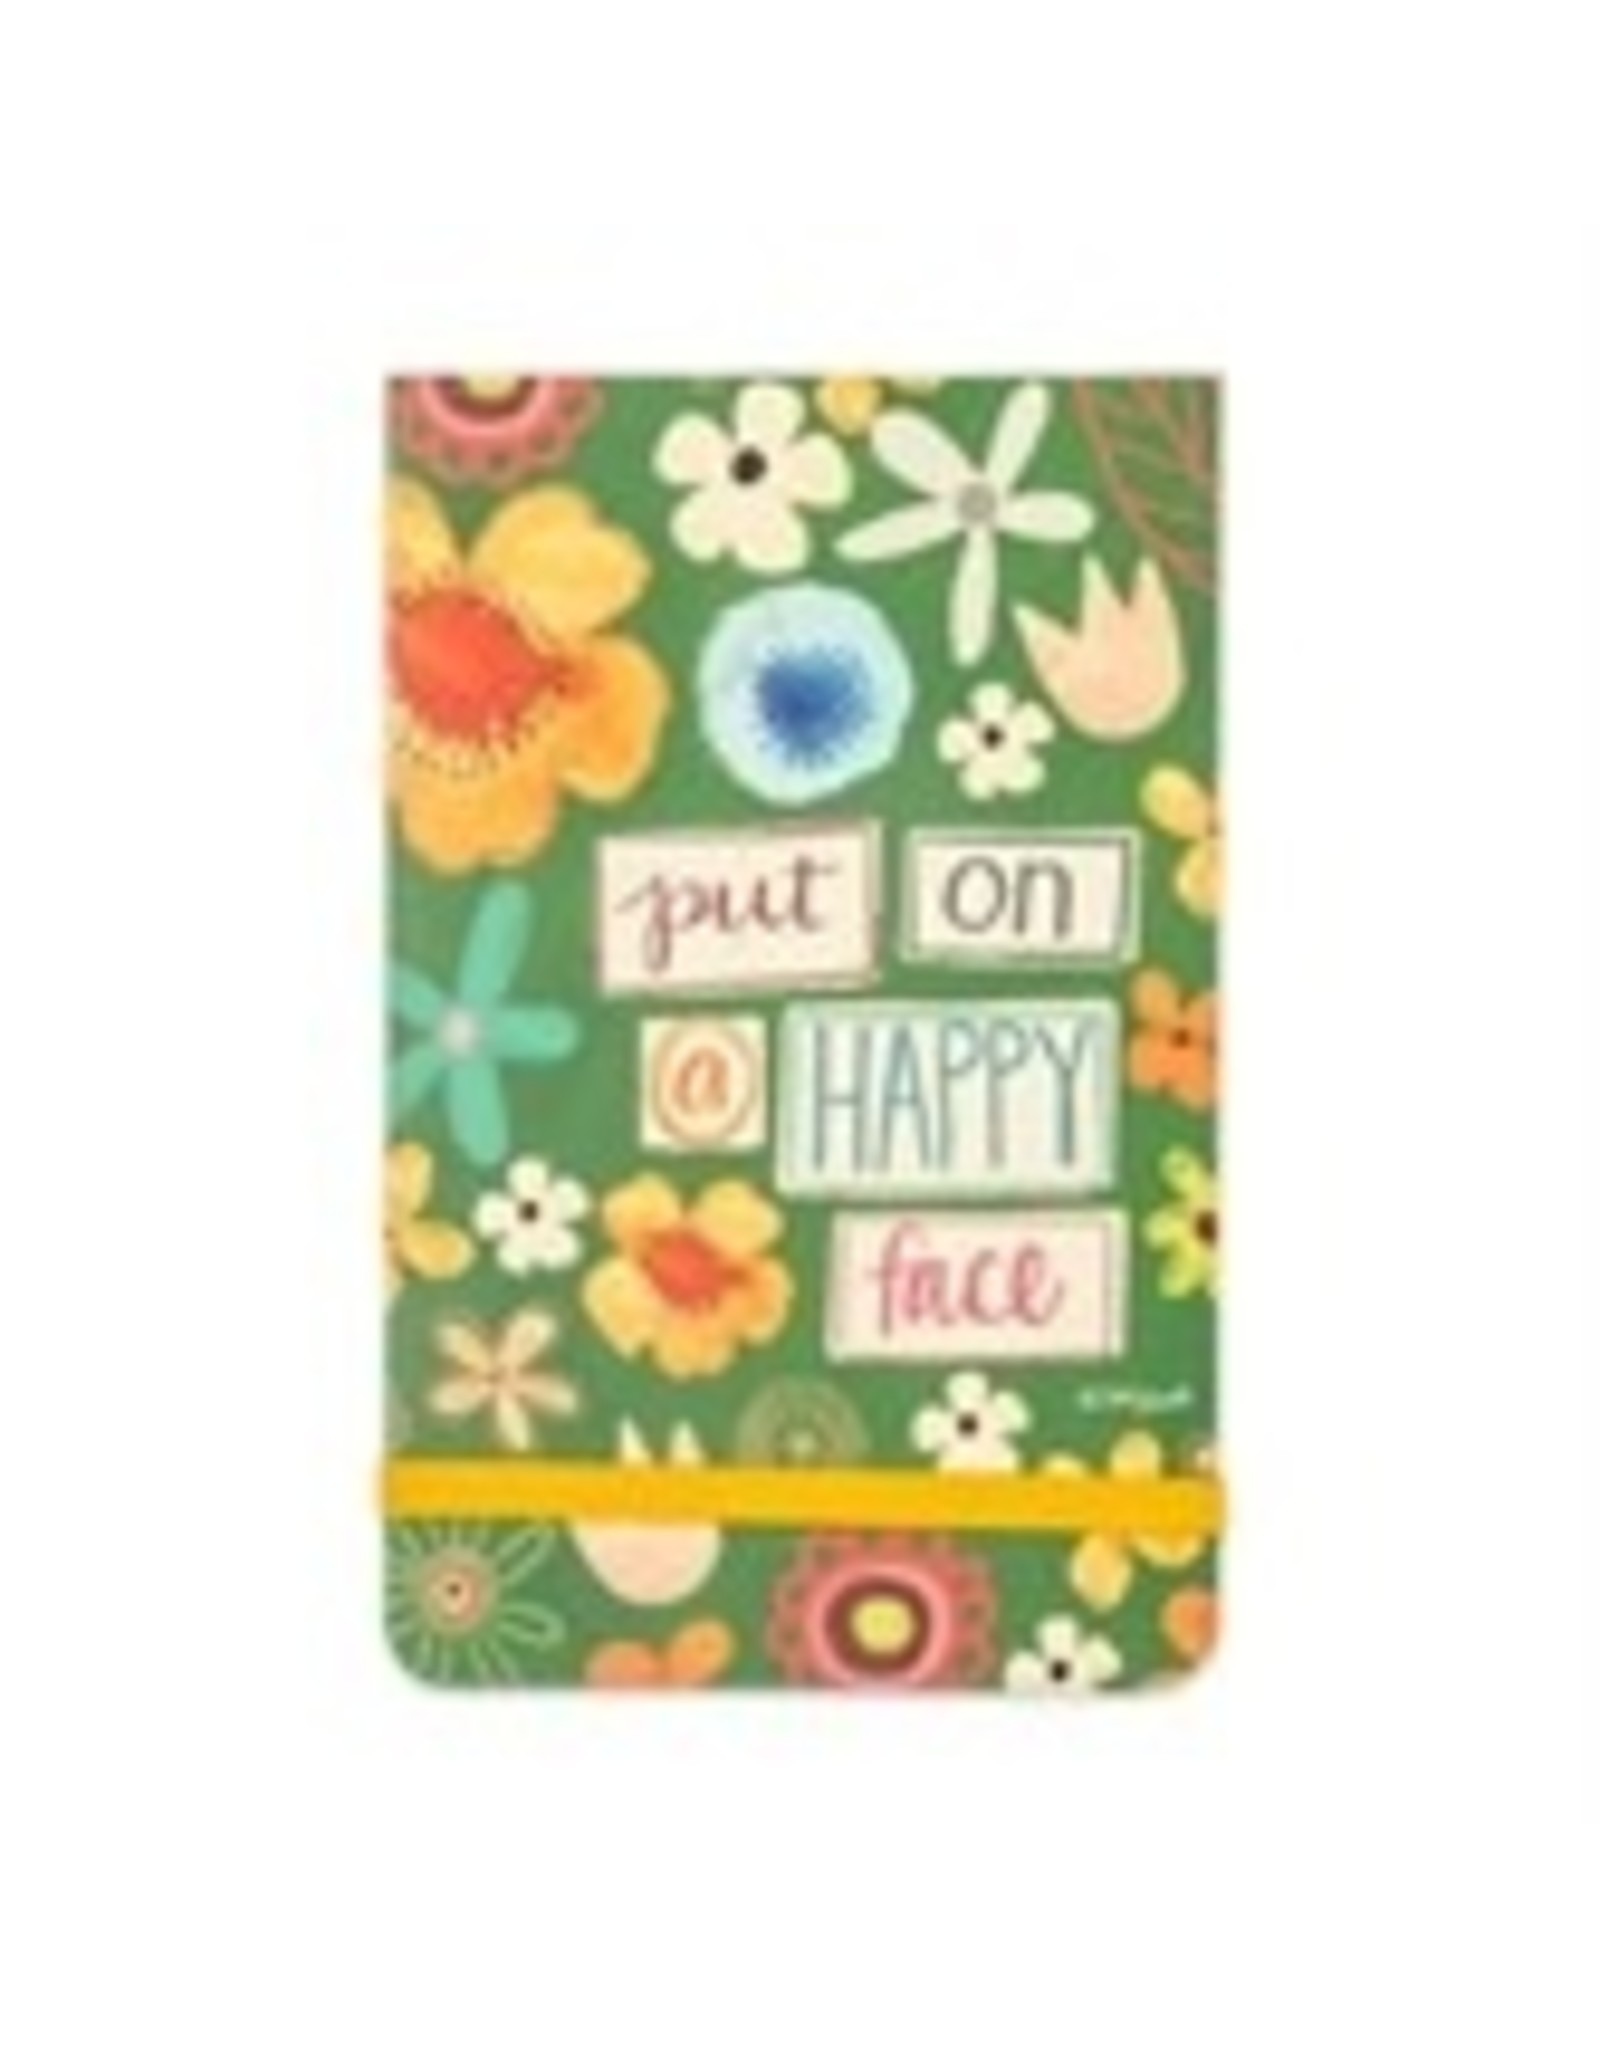 Put On Happy Face Pocket Note